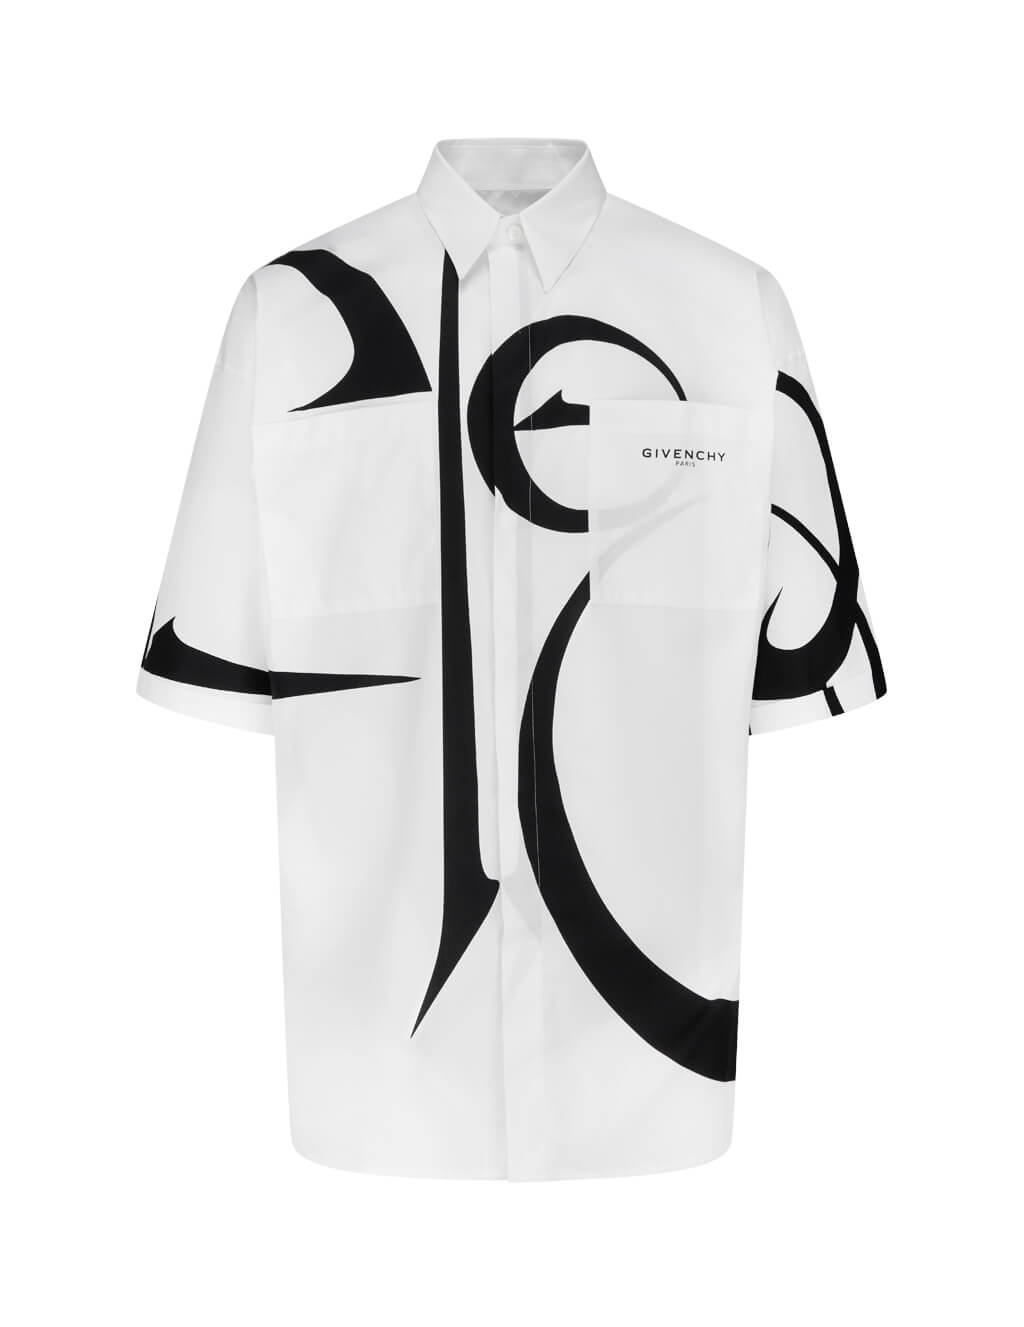 Men's White Givenchy Calligraphic Pattern Shirt BM60JL12TK 116